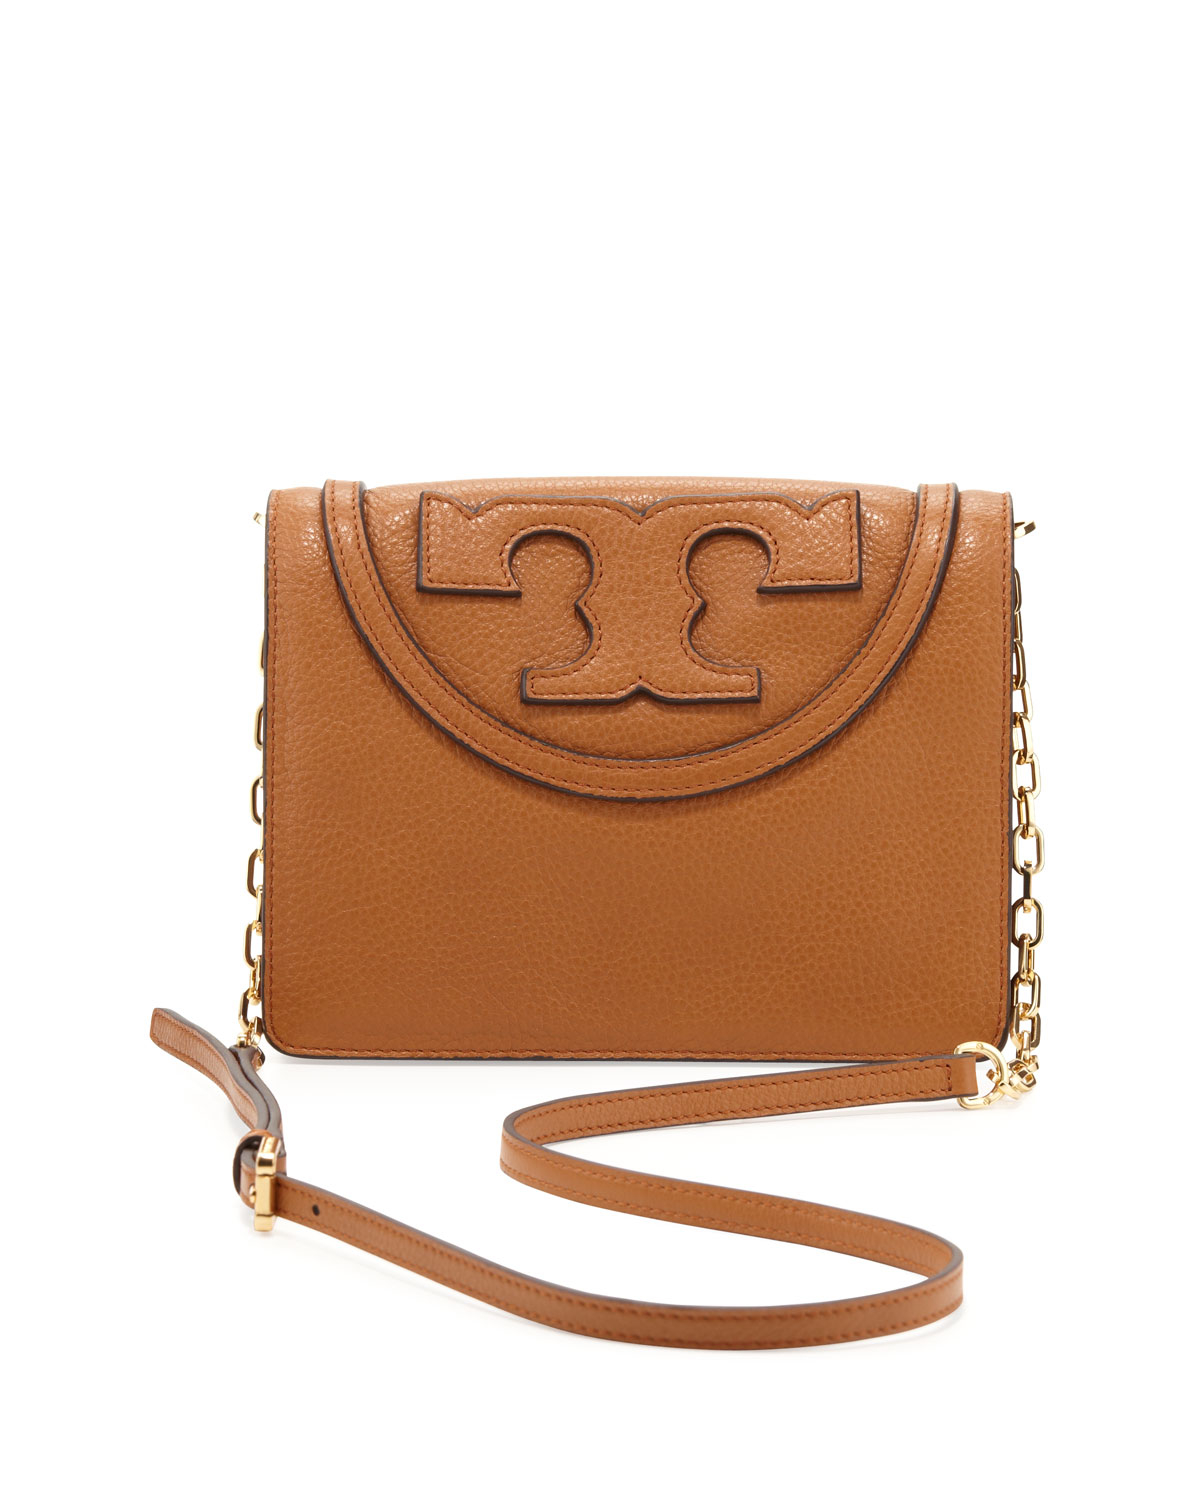 2fadf53d298 Lyst - Tory Burch All T Pebbled Crossbody Bag in Brown